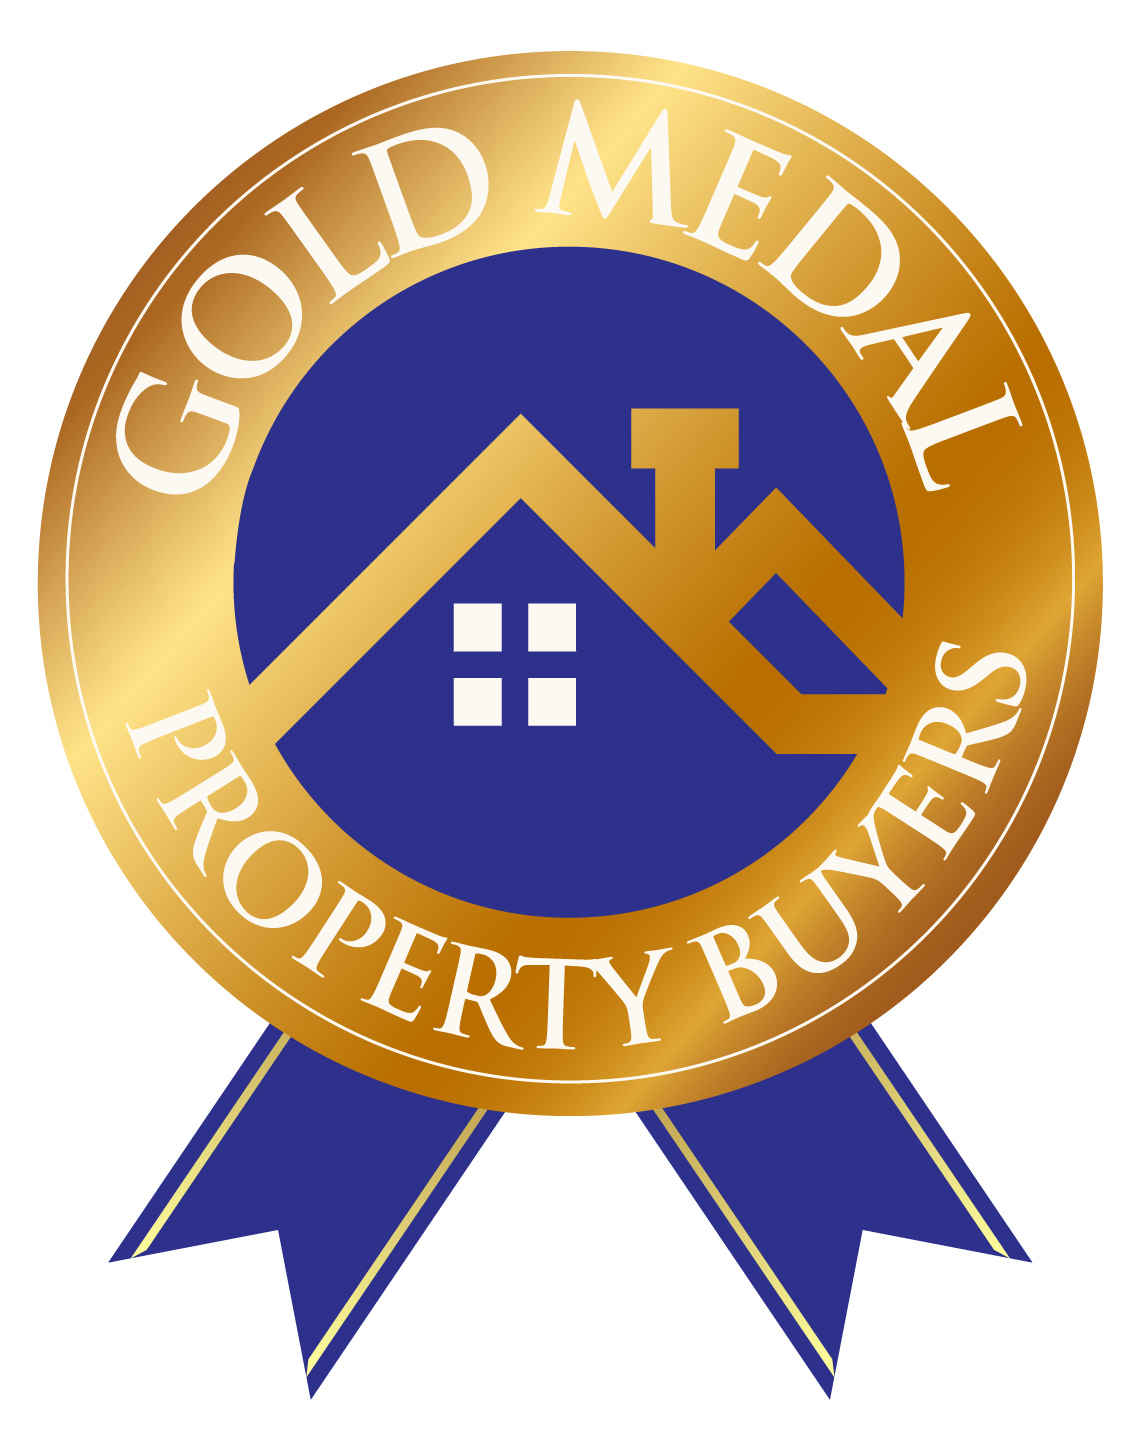 Gold Medal Property Buyers